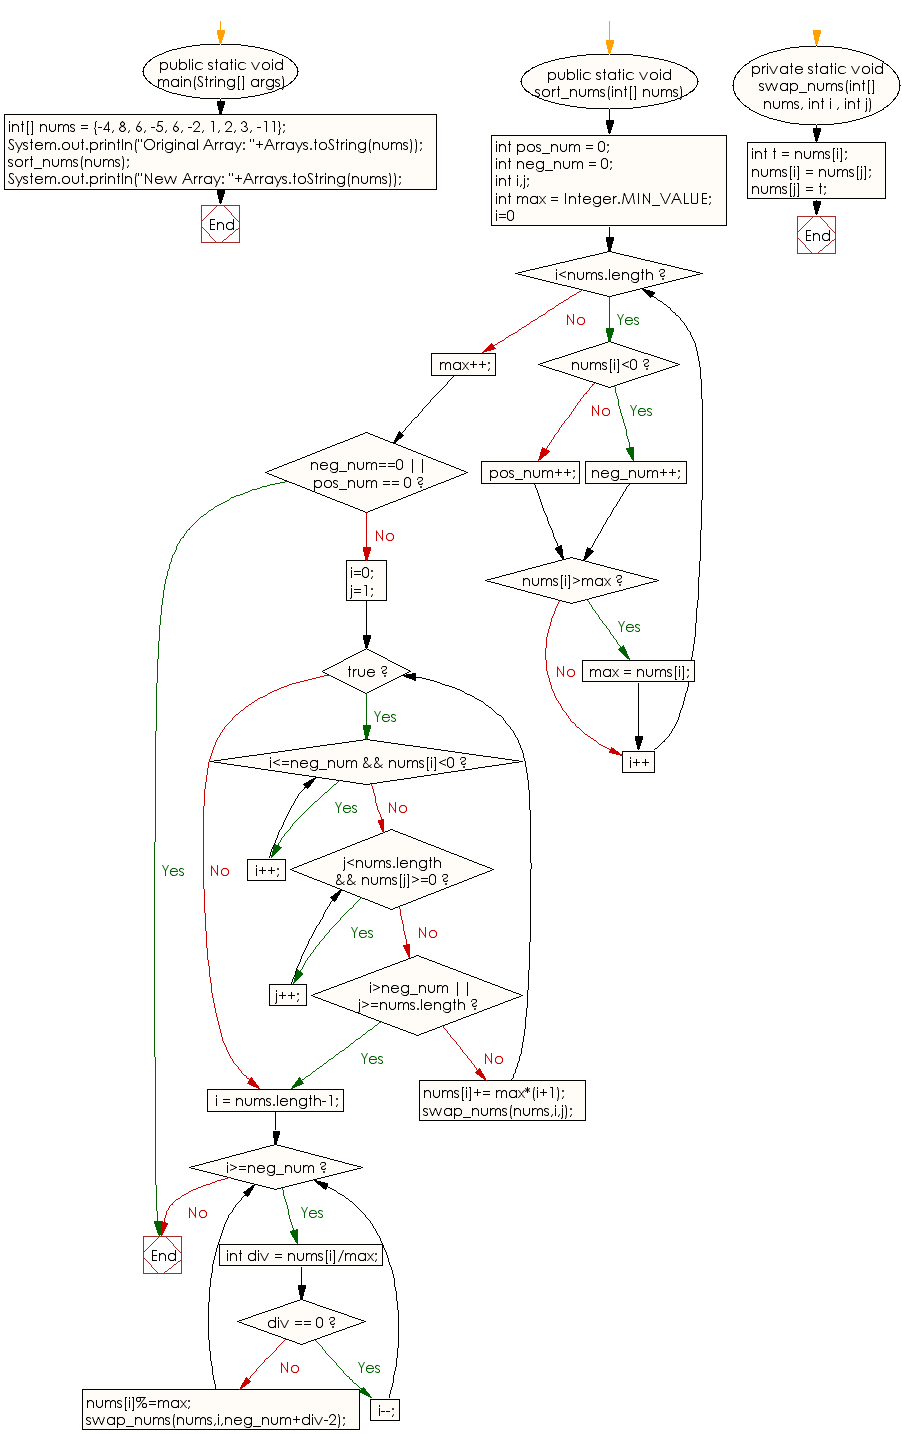 Flowchart: Arrange the elements of an given array of integers where all negative integers appear before all the positive integers